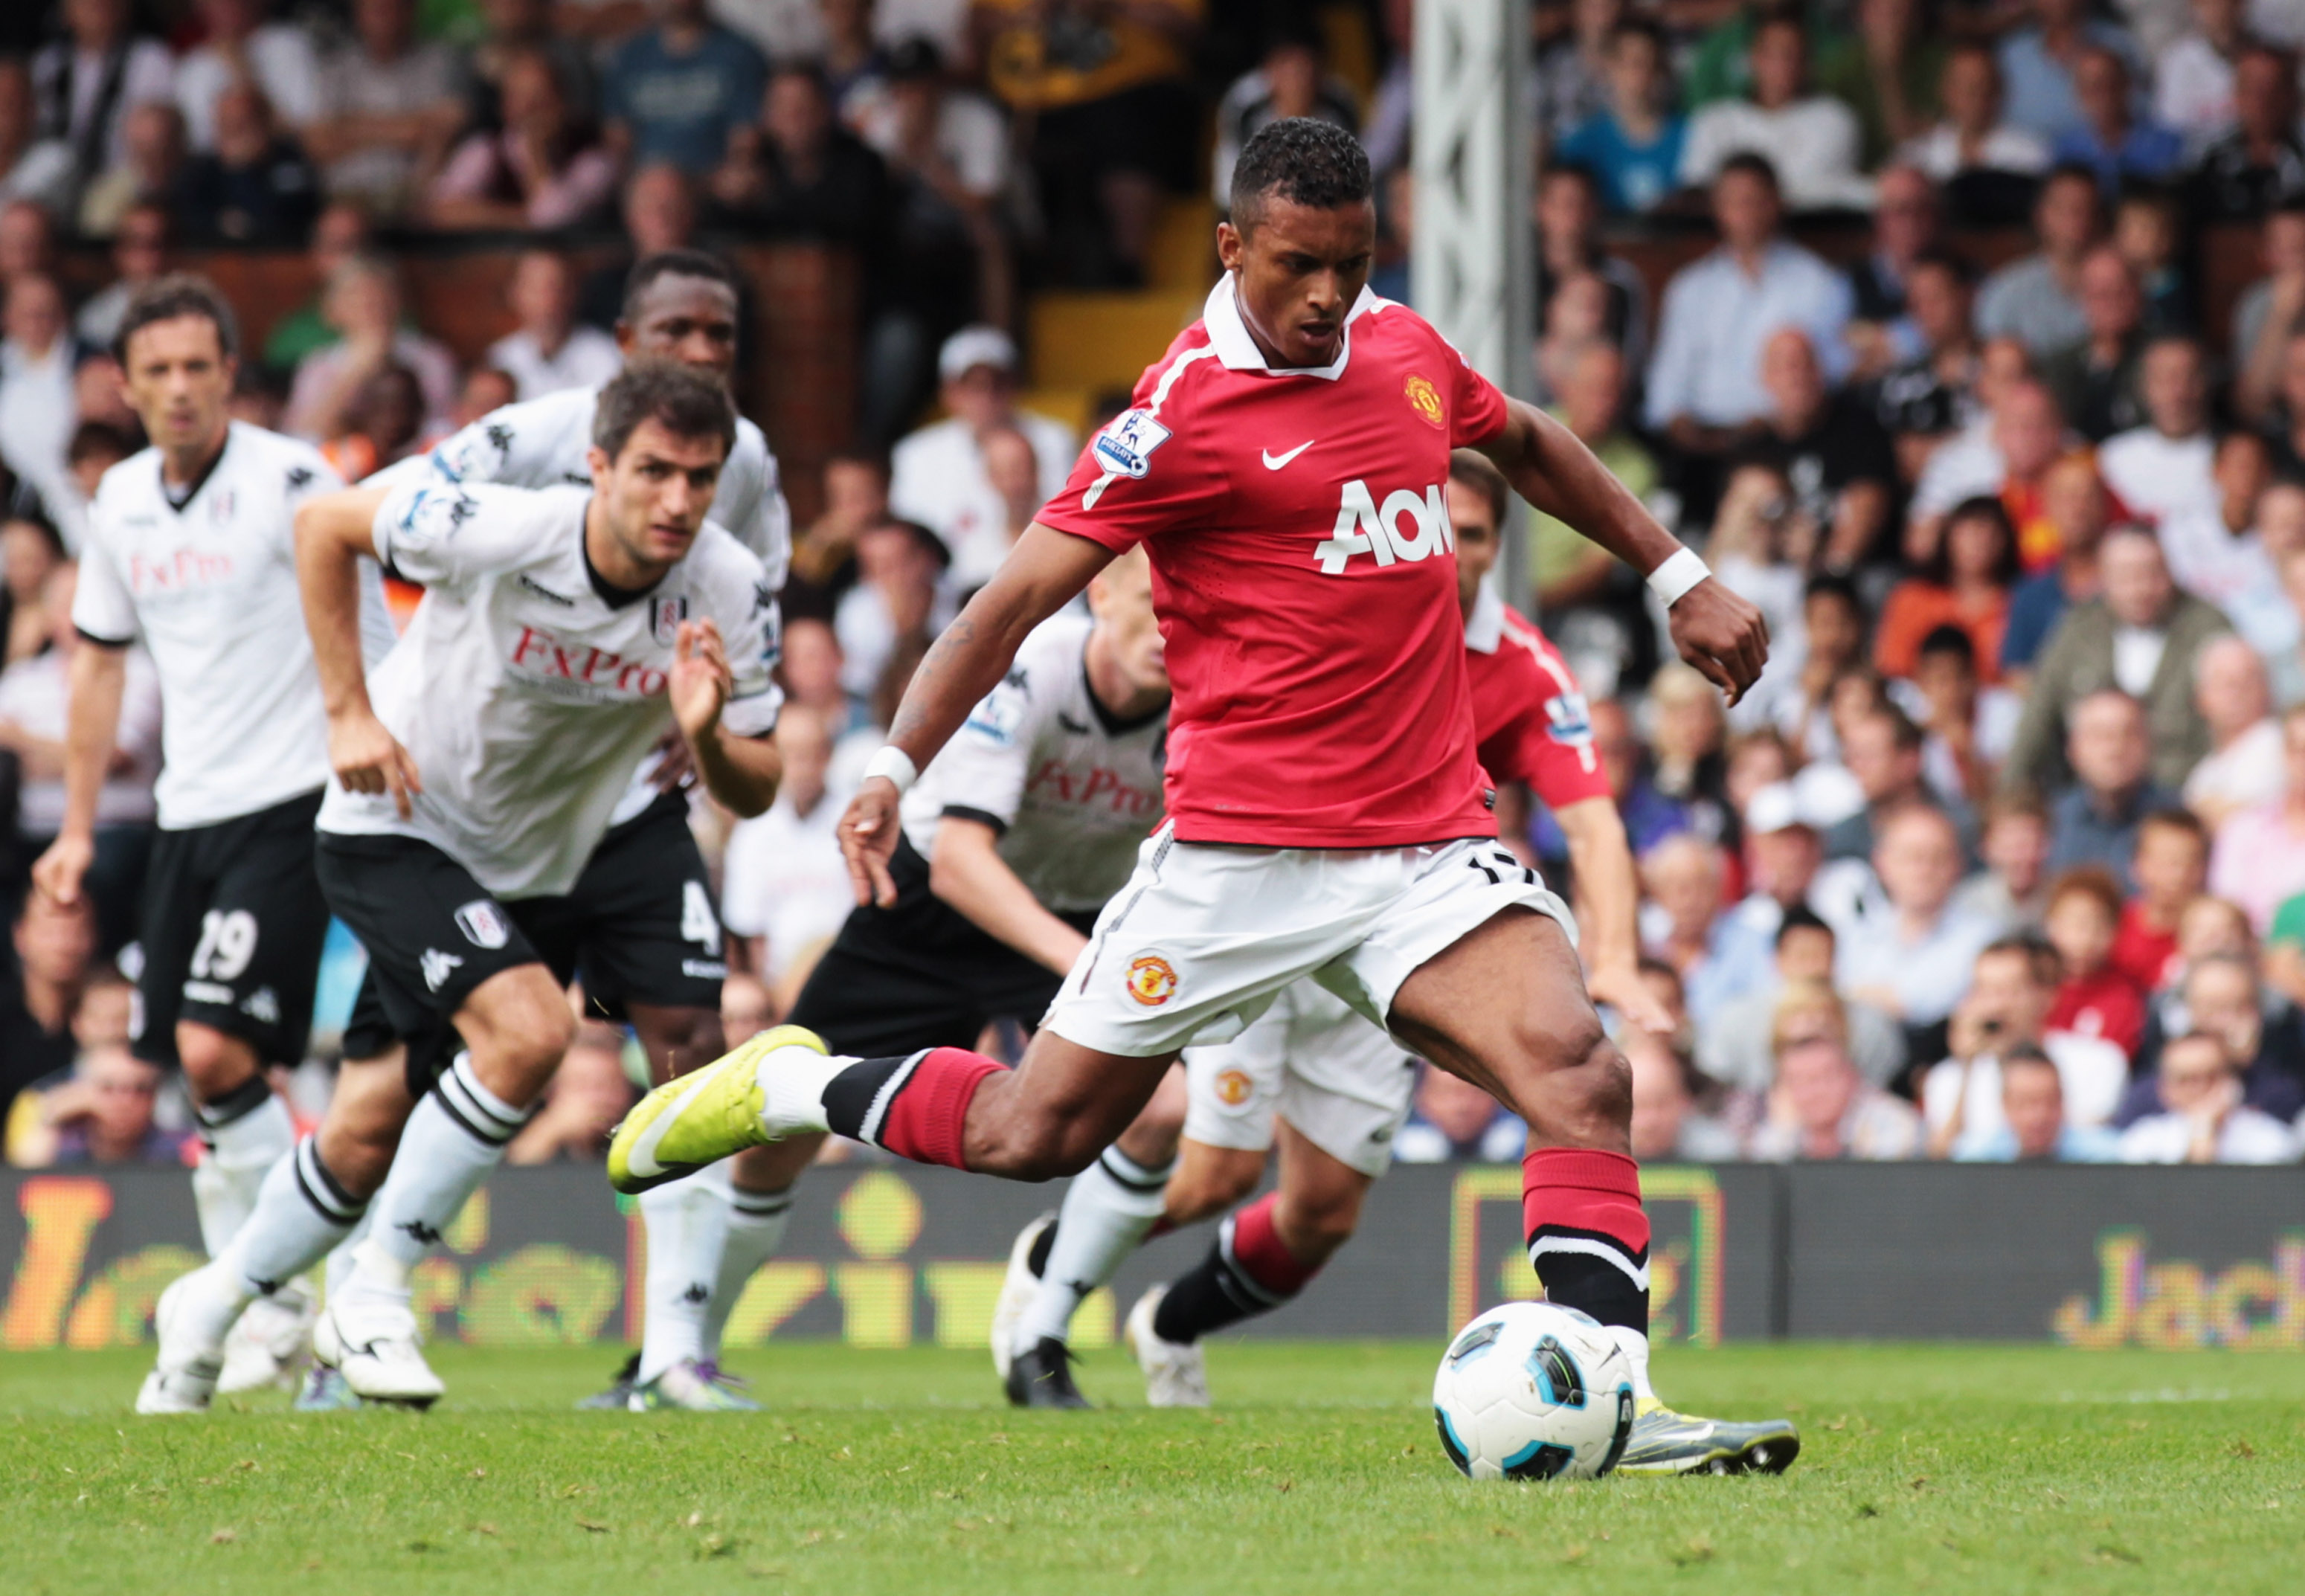 LONDON, ENGLAND - AUGUST 22:  Luis Nani of Manchester United misses a penalty during the Barclays Premier League match between Fulham and Manchester United at Craven Cottage on August 22, 2010 in London, England.  (Photo by Phil Cole/Getty Images)